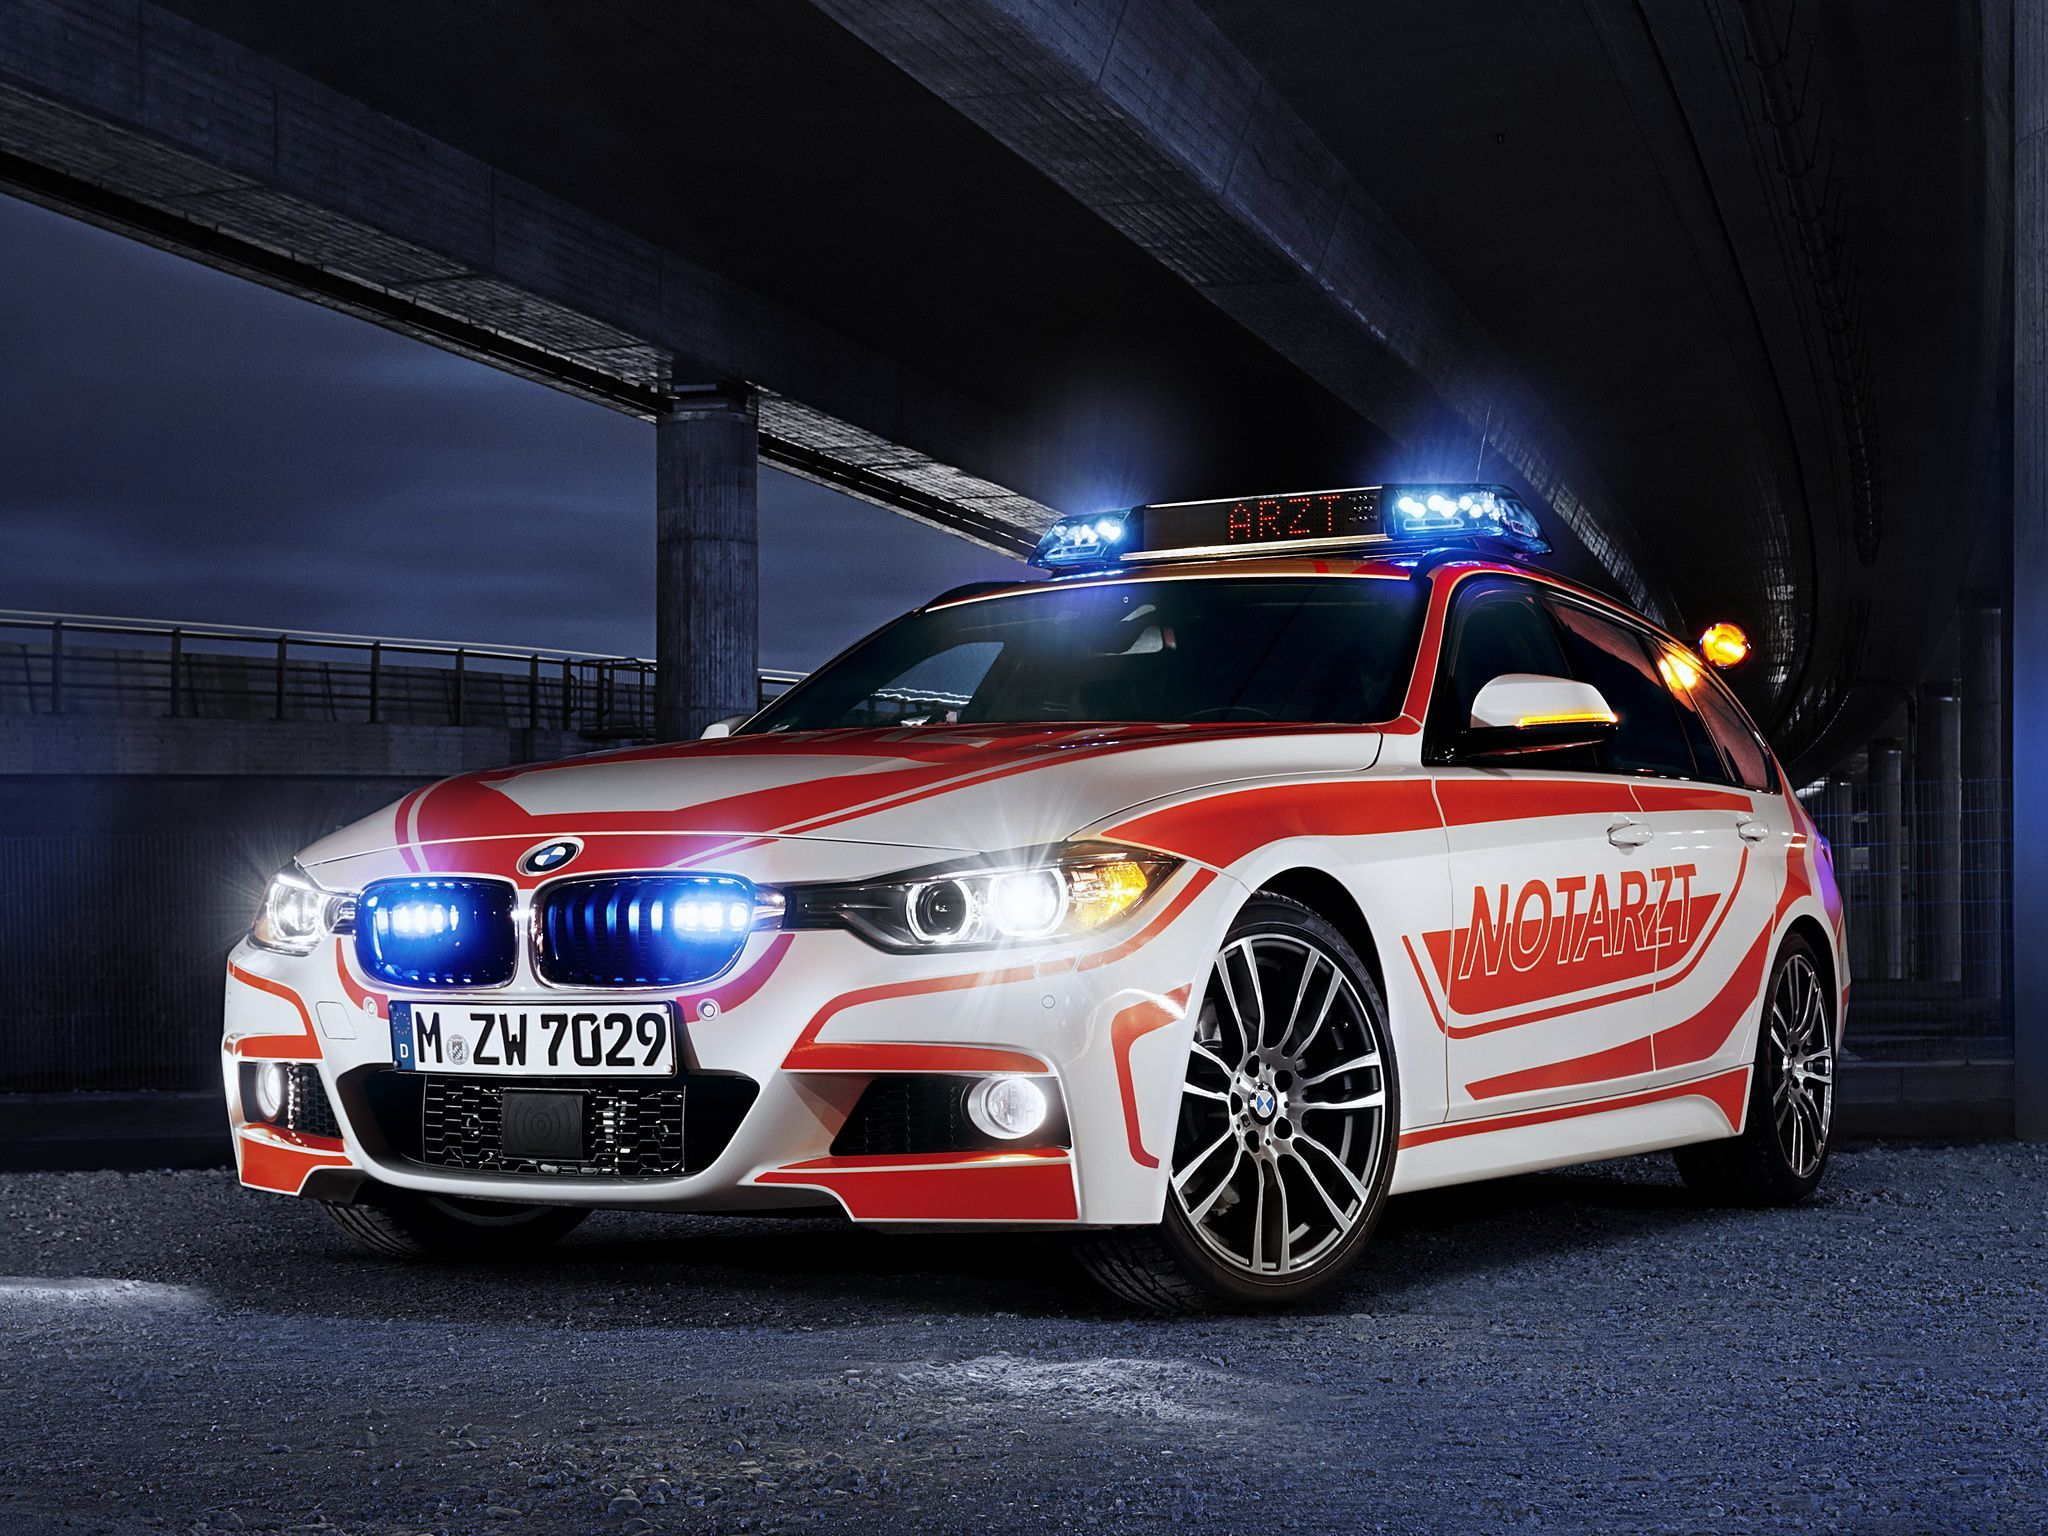 2013 BMW 3 Series Touring M Sports Package Notarzt カー